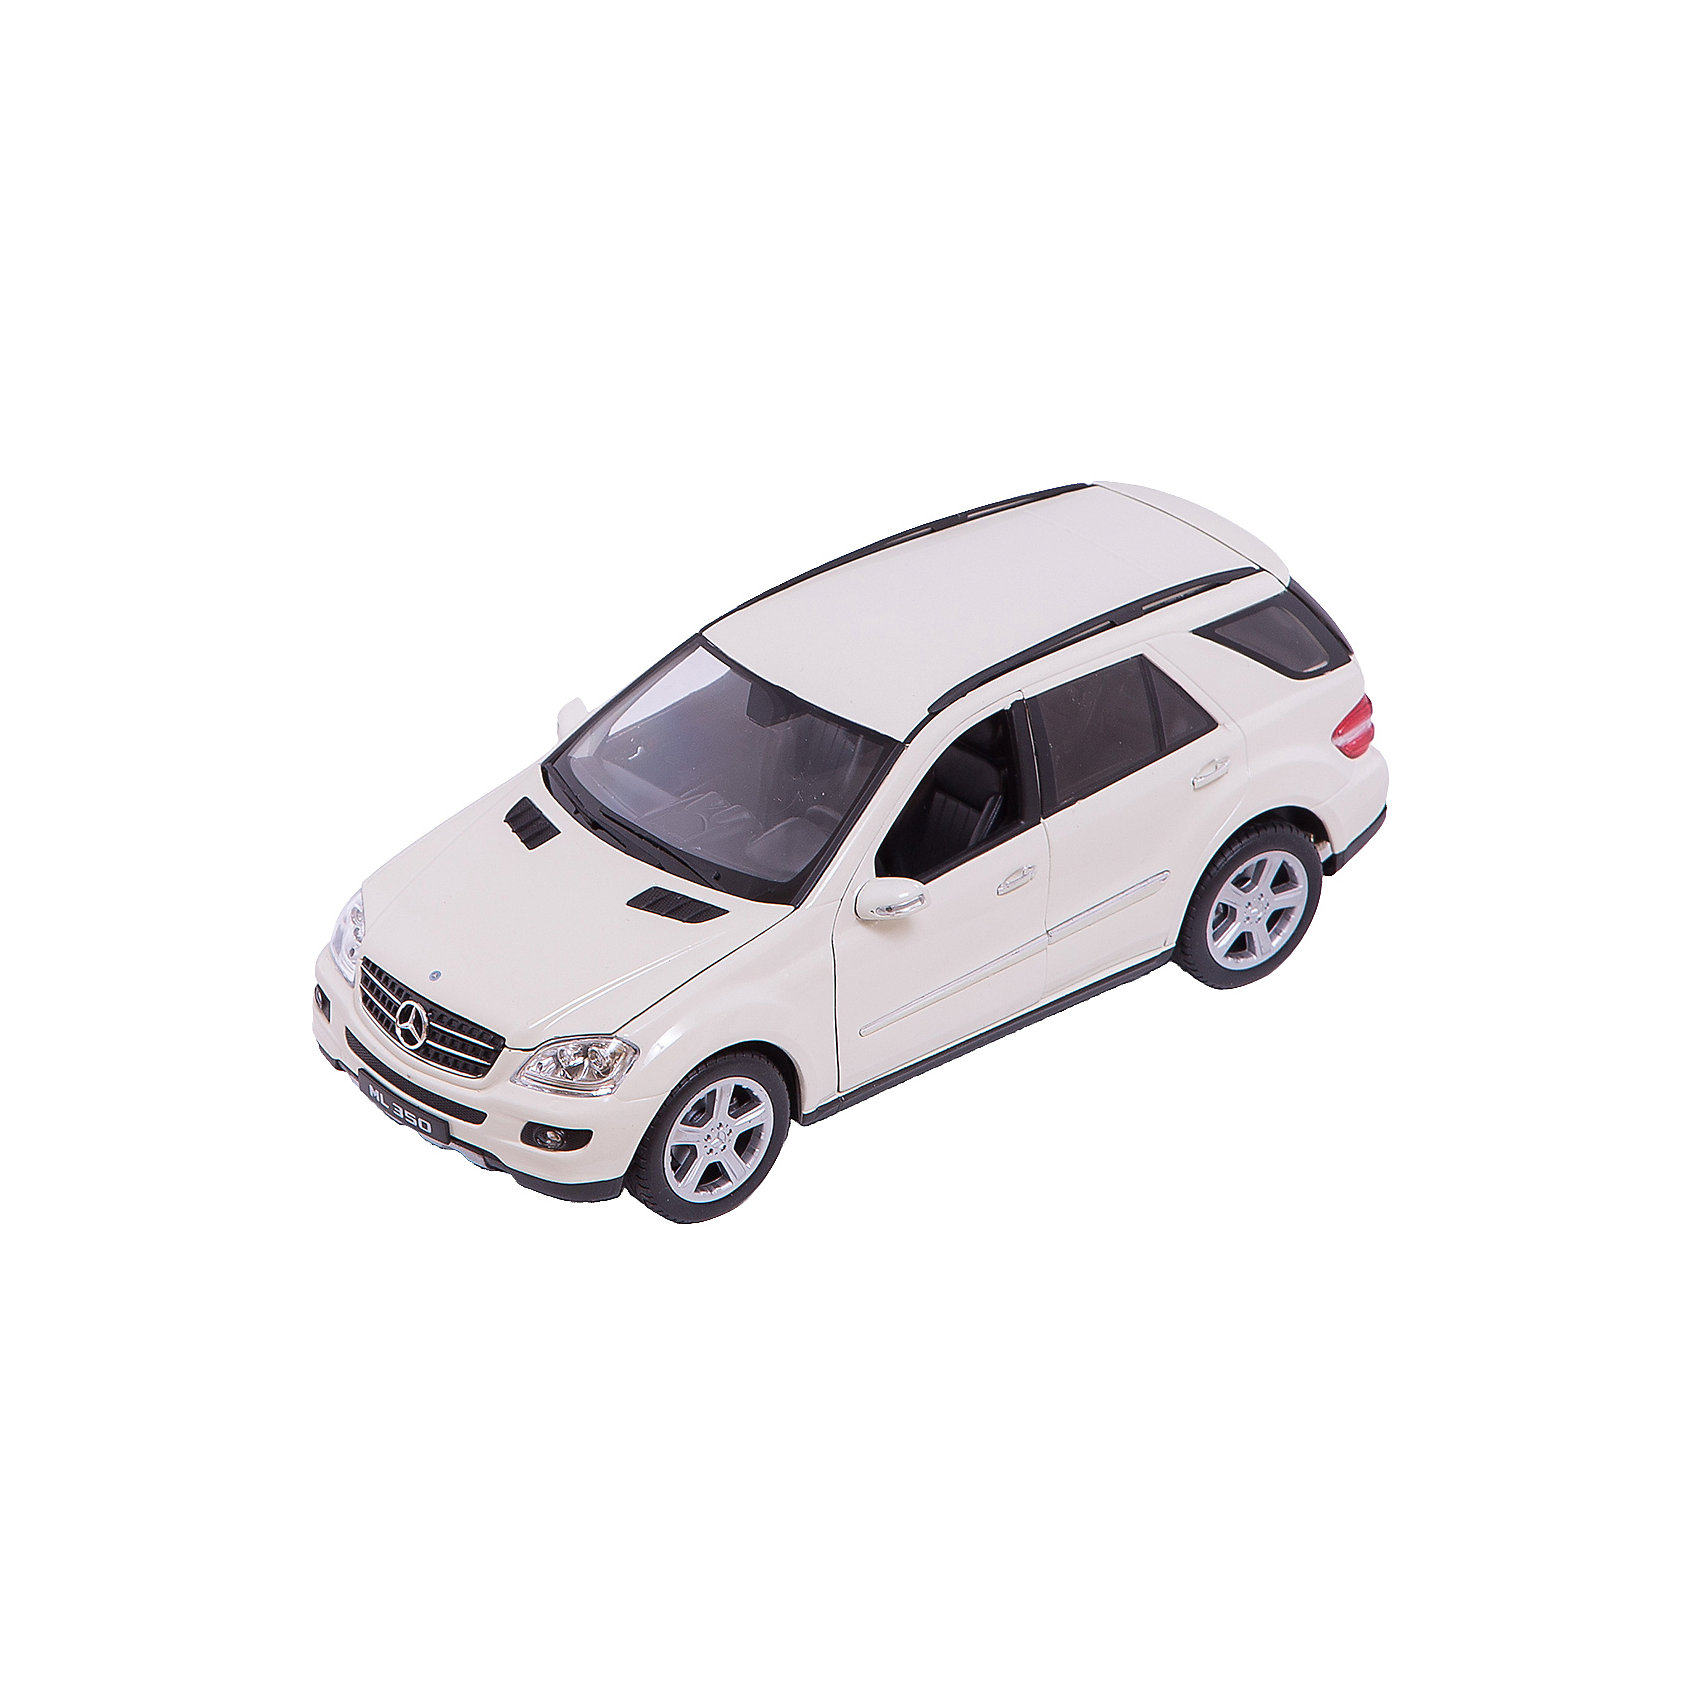 Welly Welly Модель машины 1:18 Mercedes-Benz ML350 red line ibox crystal чехол для samsung g530 g531 galaxy grand prime clear